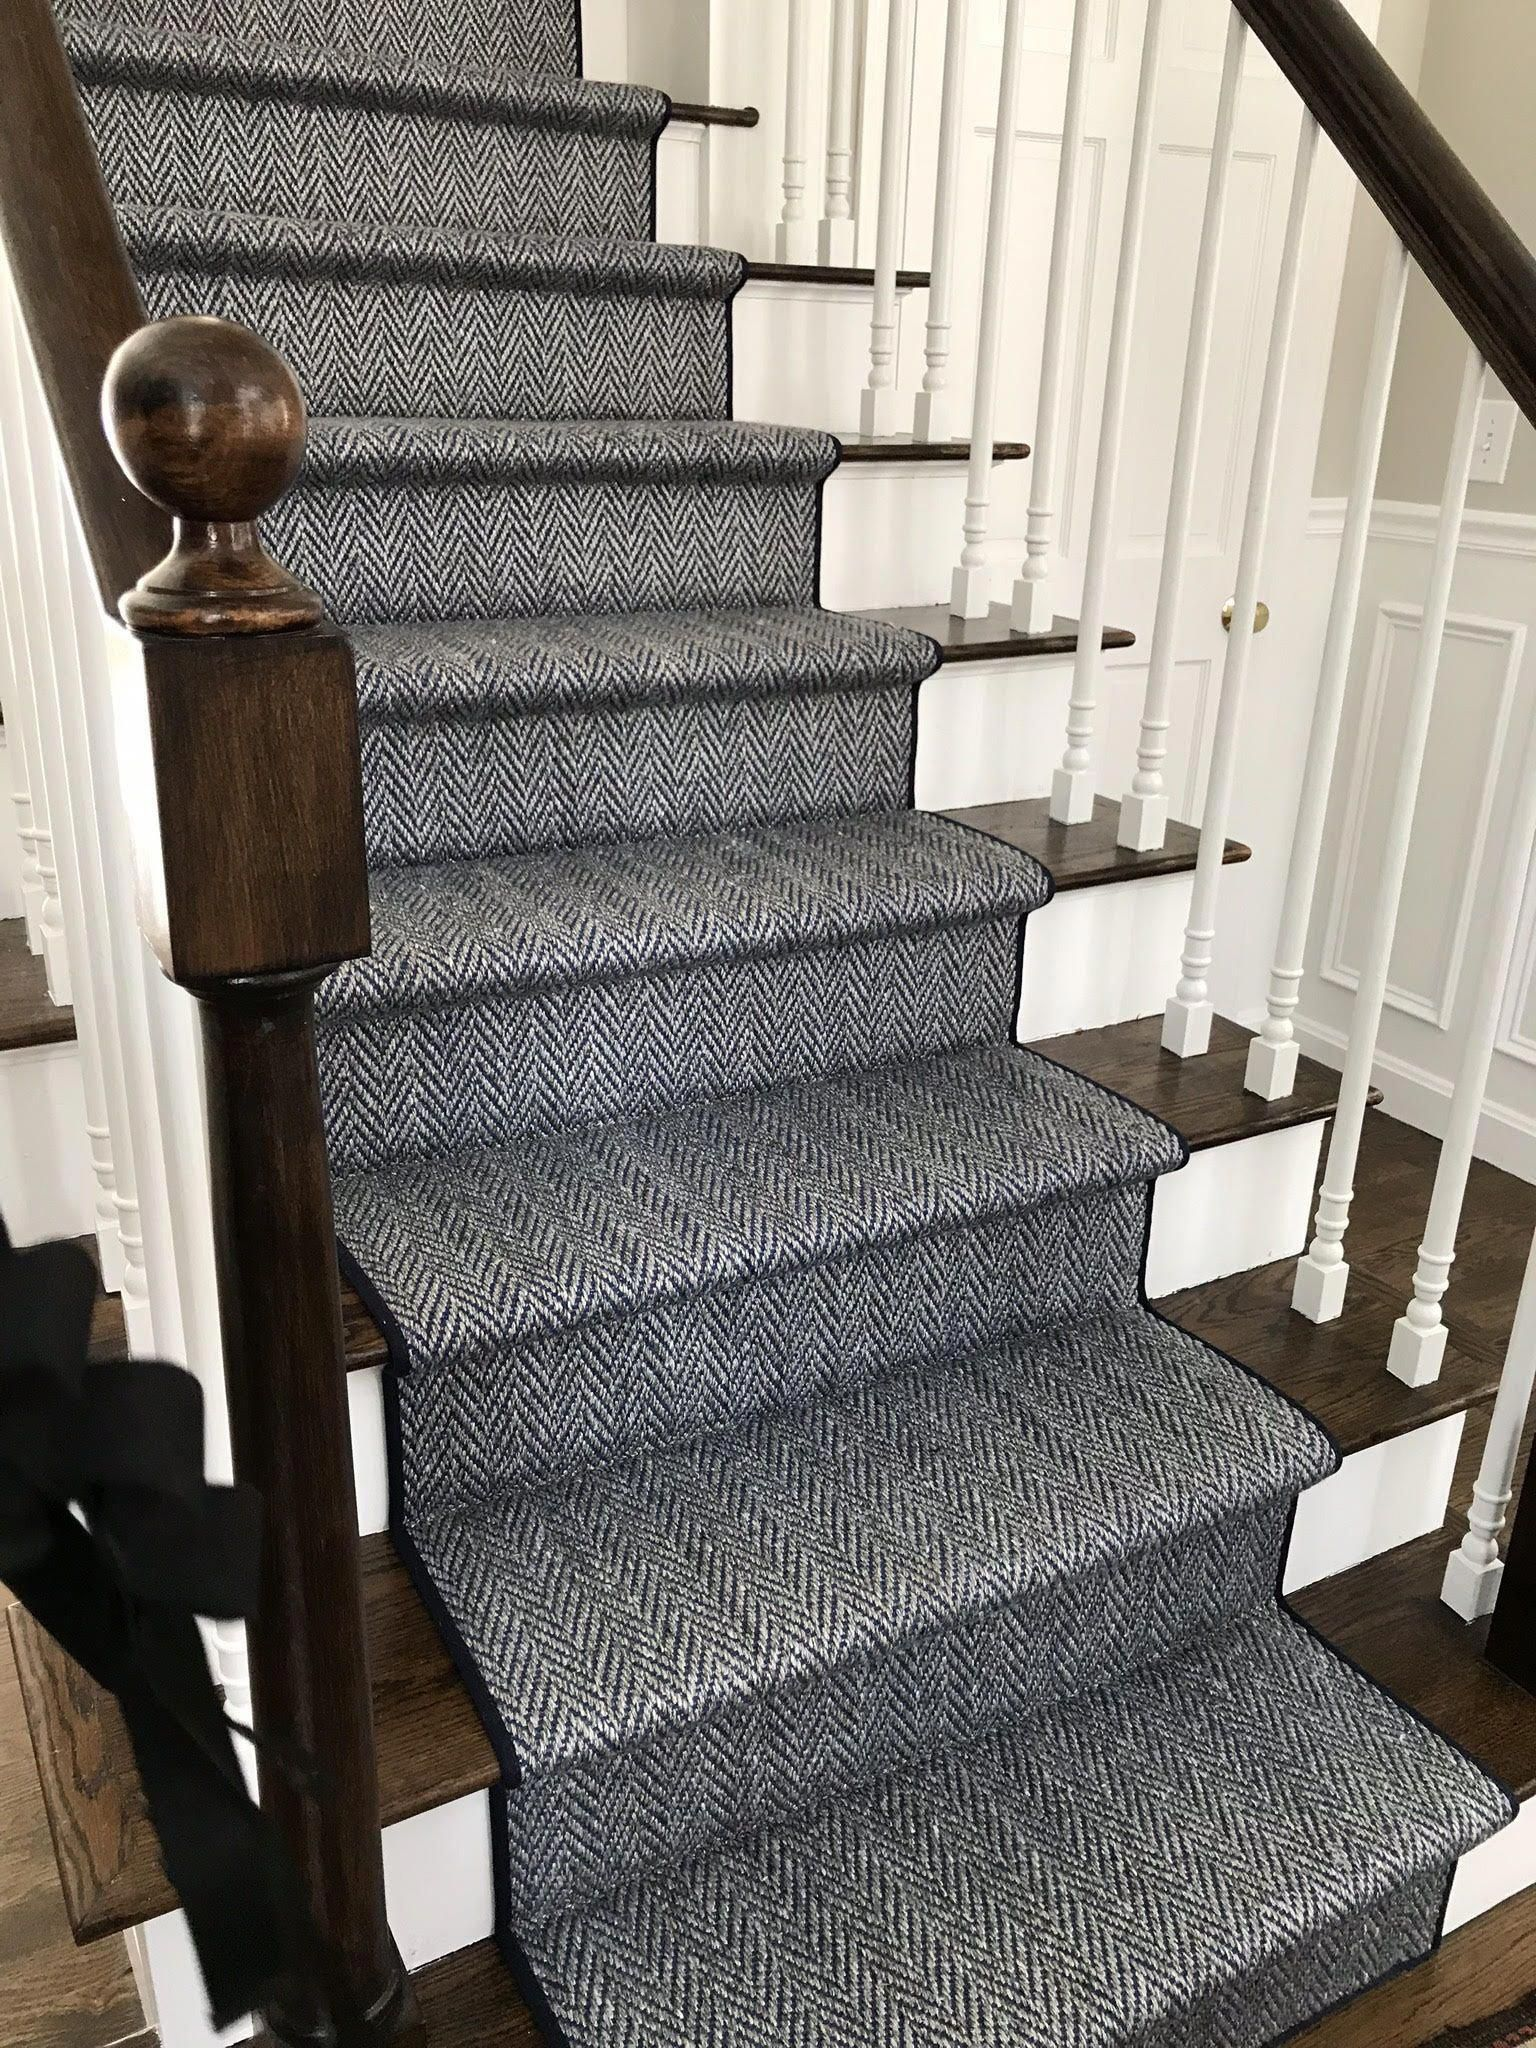 Carpet Runners For Stairs Amazon Product Id 1725086665 Stair | Carpet For Stairs Amazon | Indoor Stair | Anti Slip | Stair Runner Rugs | Self Adhesive | Beige